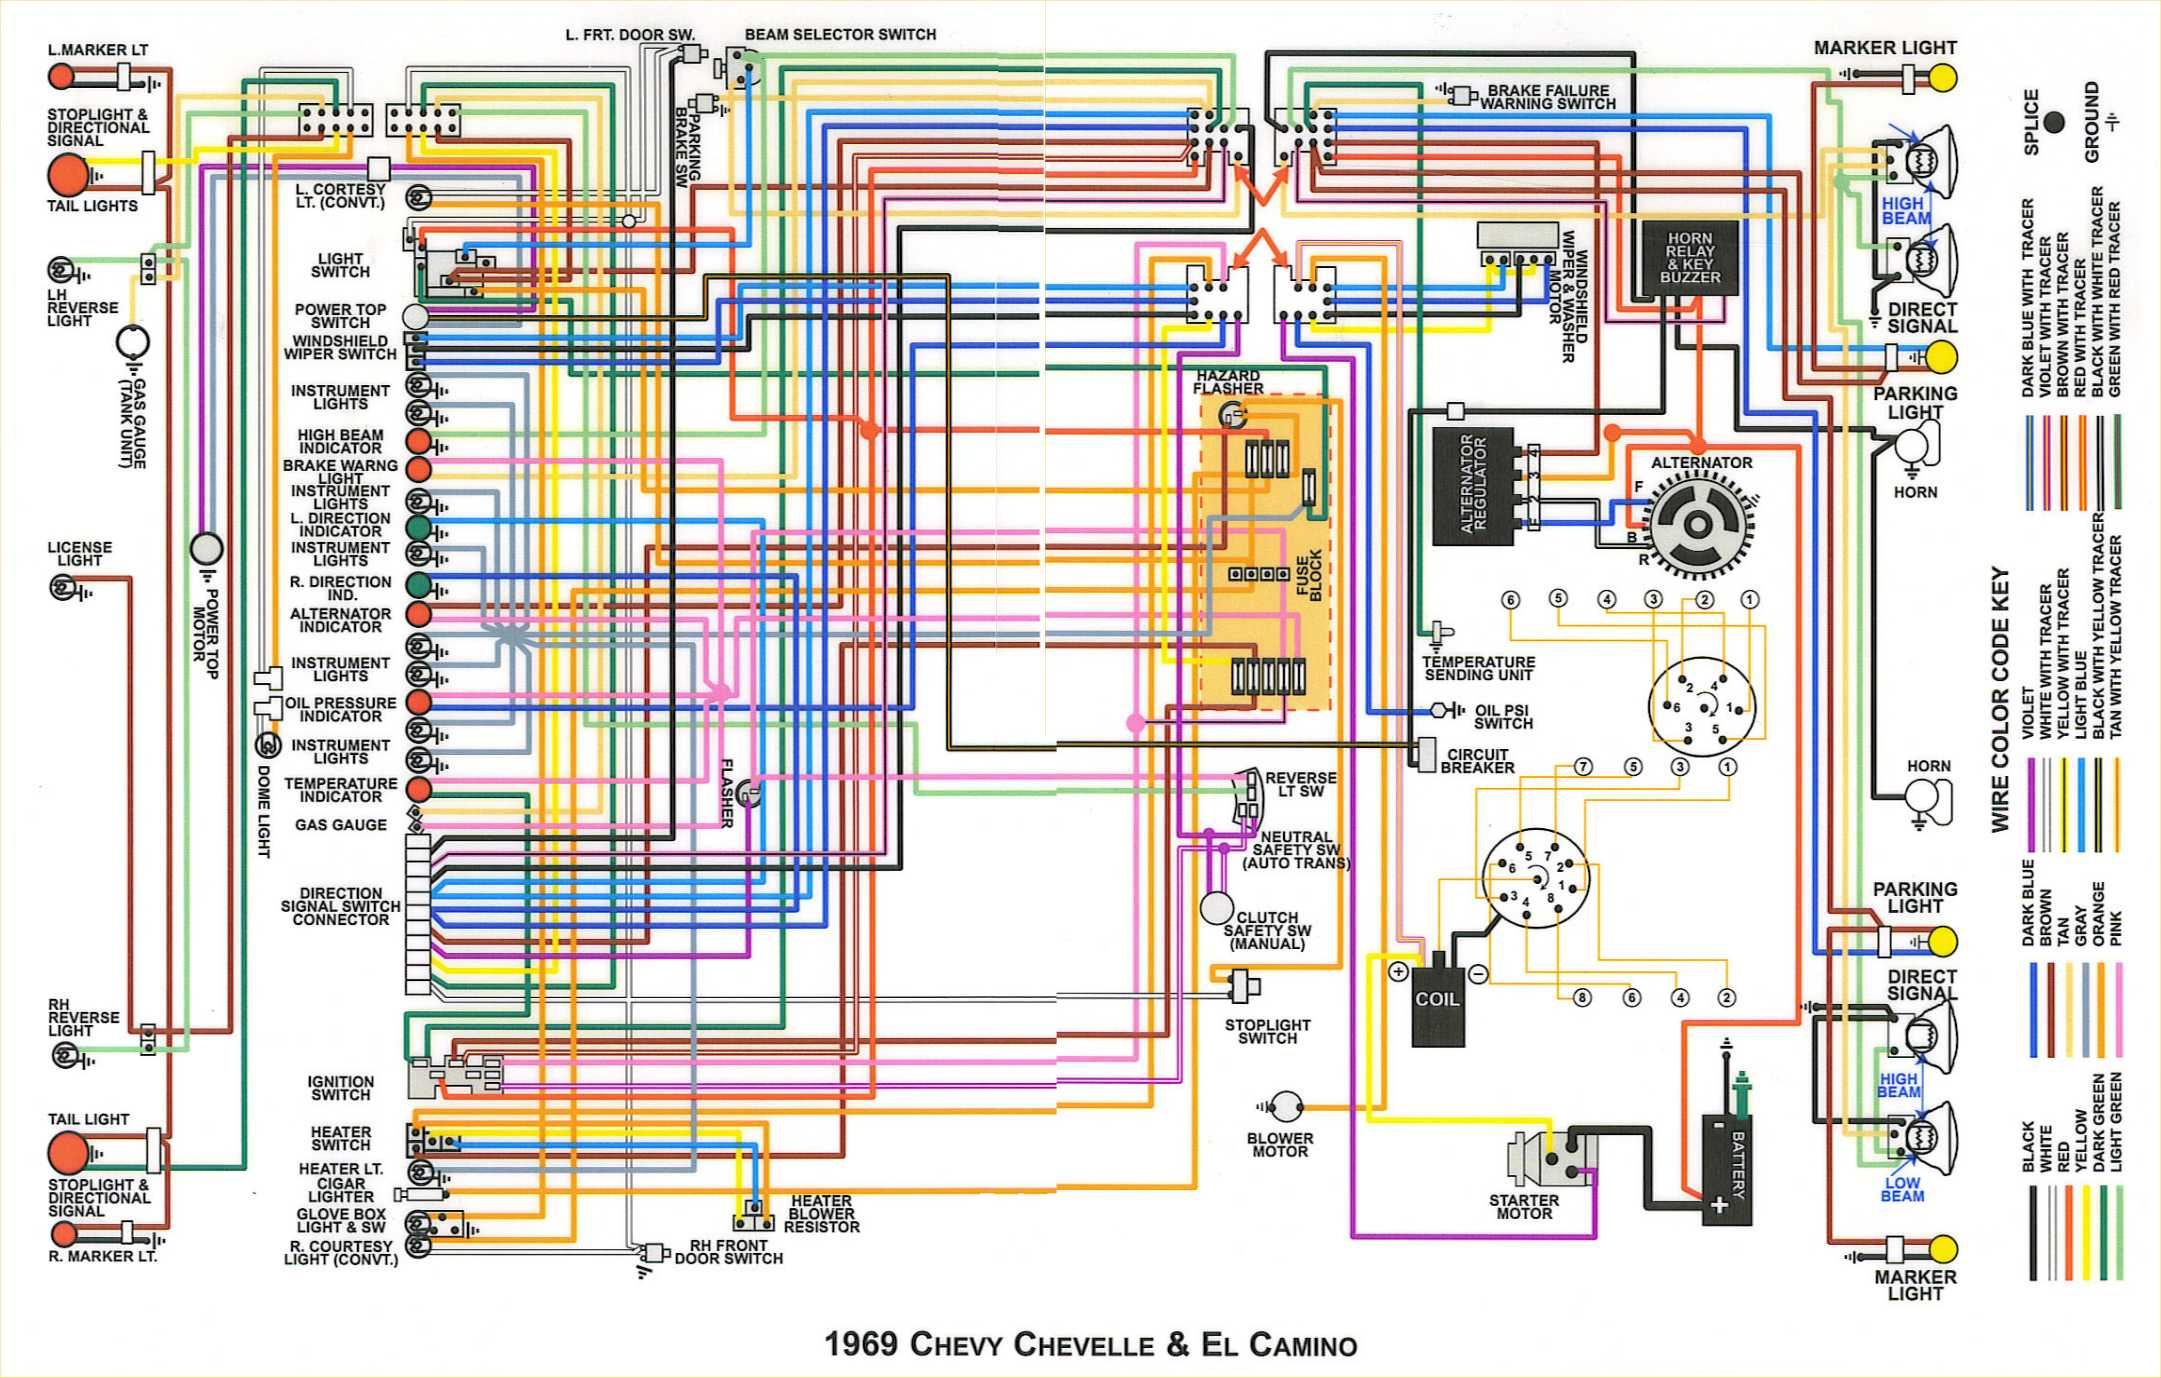 windshield wiper wiring 1966 chevelle - hot rod forum : hotrodders, Wiring diagram